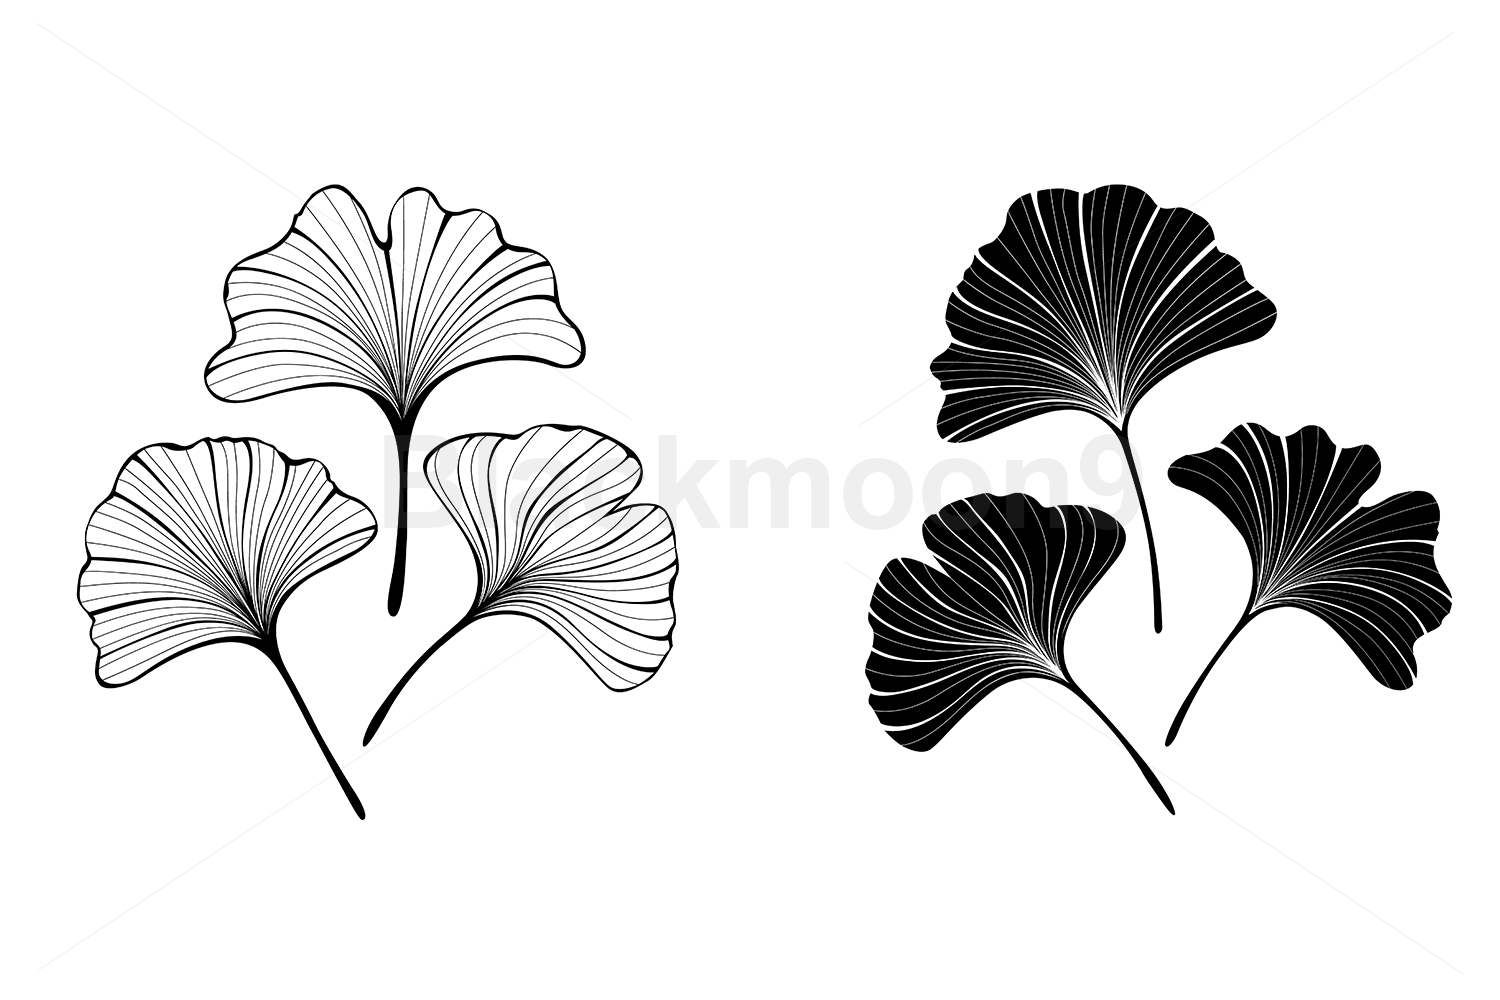 Download Free Monochrome Leaves Of Ginko Biloba Graphic By Blackmoon9 for Cricut Explore, Silhouette and other cutting machines.